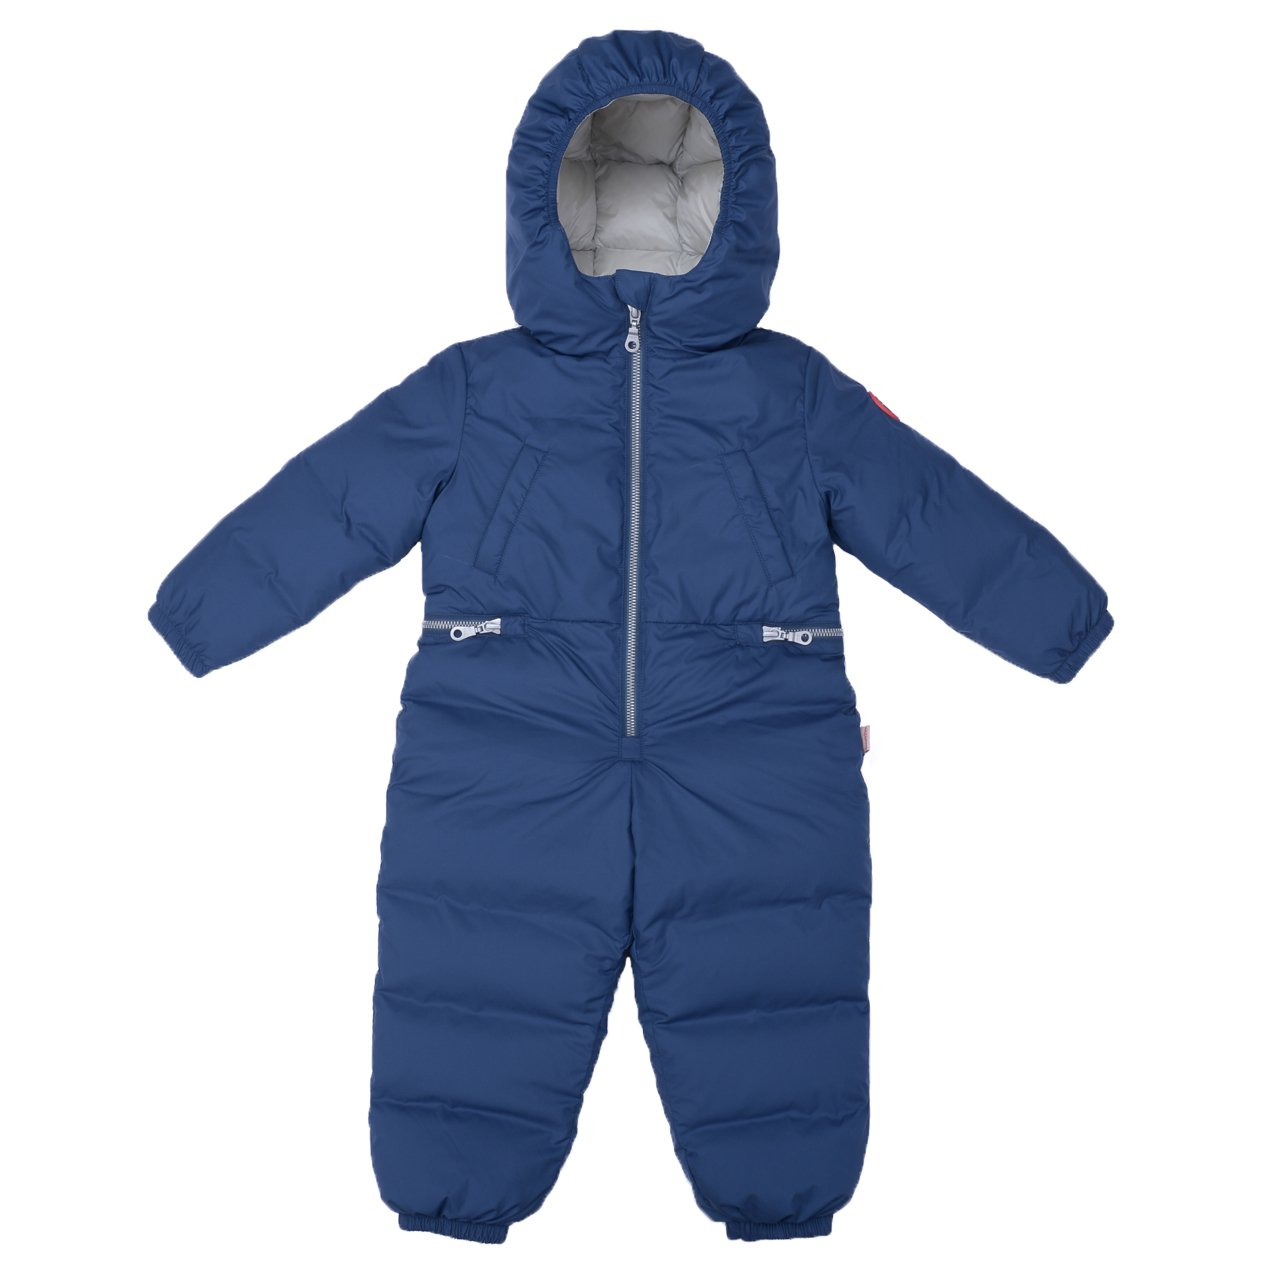 Nanny McPhee Baby Snowsuit Winter Baby Boys Girls Snuggly Bunny Bunting Kids Puffer Jumpsuit 8-12 months/1-7 Years Old